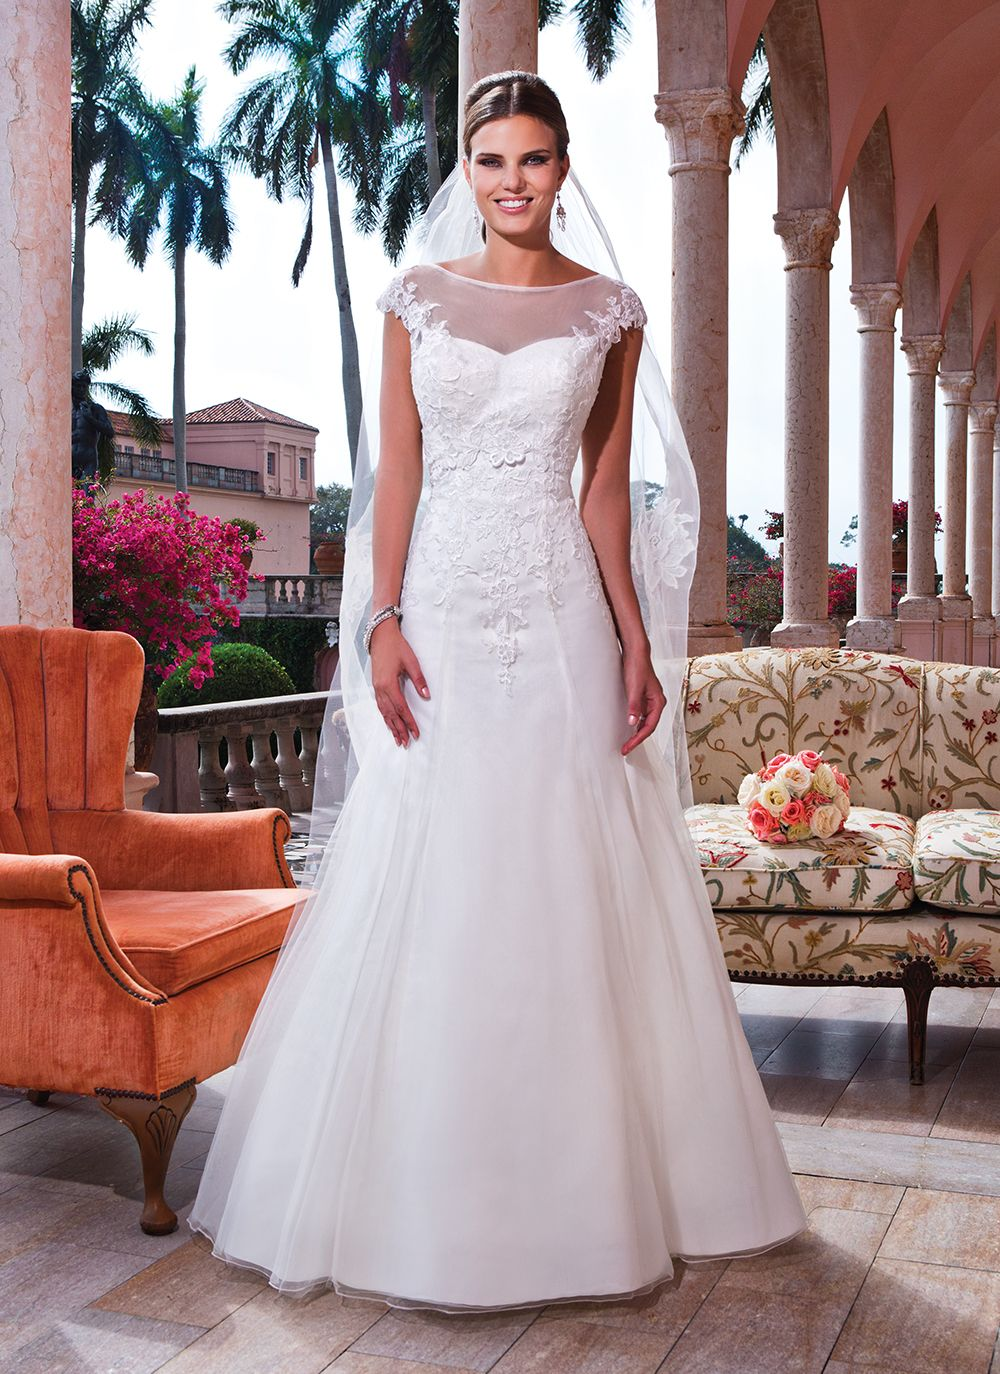 Sweetheart gowns sweetheart style tulle corded lace fit and